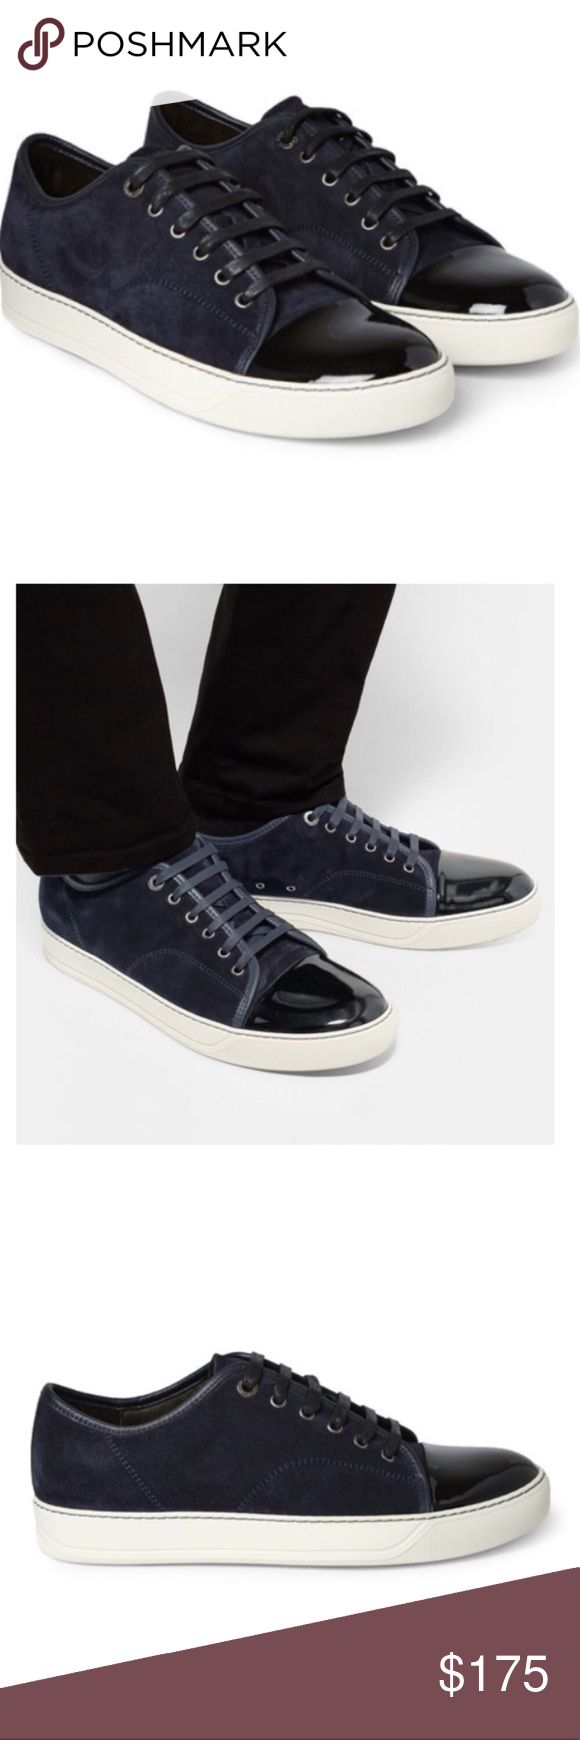 Lanvin Men's Sneakers Preloved with plenty of life left.  Lanvin's sleek suede and patent-leather Sneaker demonstrate that France's oldest couture house has a firm grip on contemporary style.  Wear this subtle two-Tone pair with cropped or cuffed trousers.  Midnight blue suede and black patent-leather.  Leather linings, rubber soles.  Lace-up.  Retail $500 at Barneys.  This style has been worn by JayZ, Ben Affleck, George Clooney, Usher, David Beckham and other celebrities.  Size 10 UK…